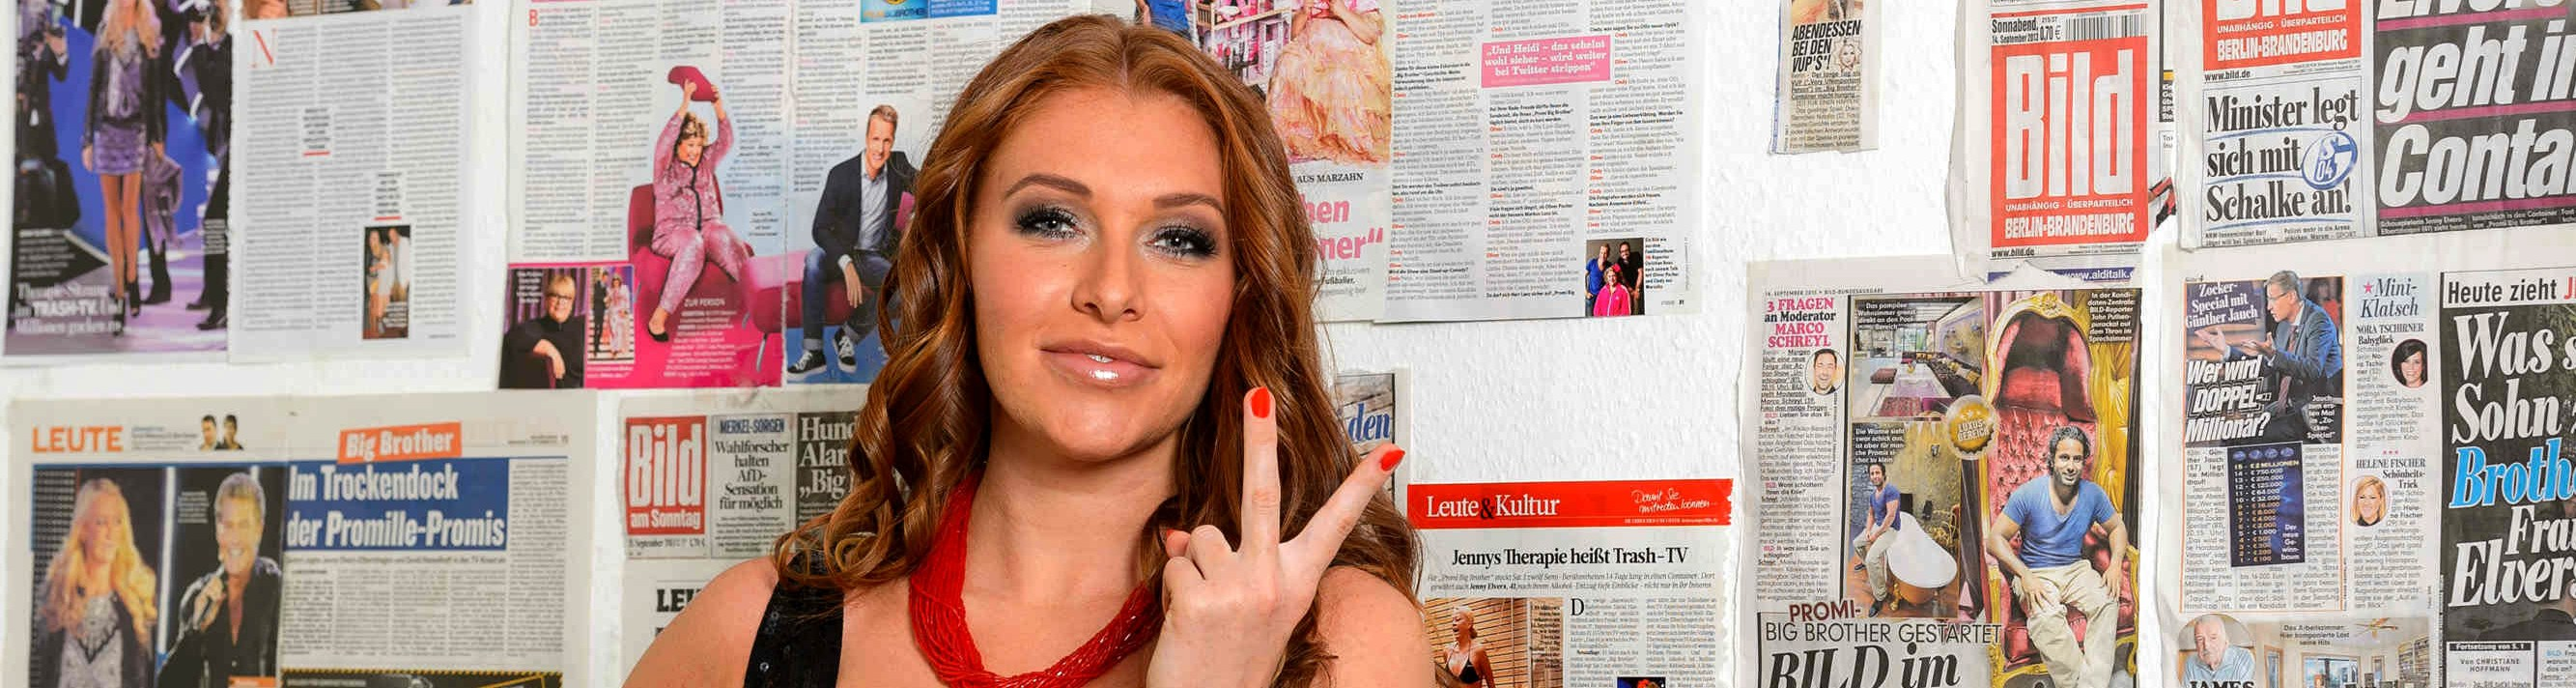 Georgina Fleur Promi Big Brother 2013 Bewohnerin BILD